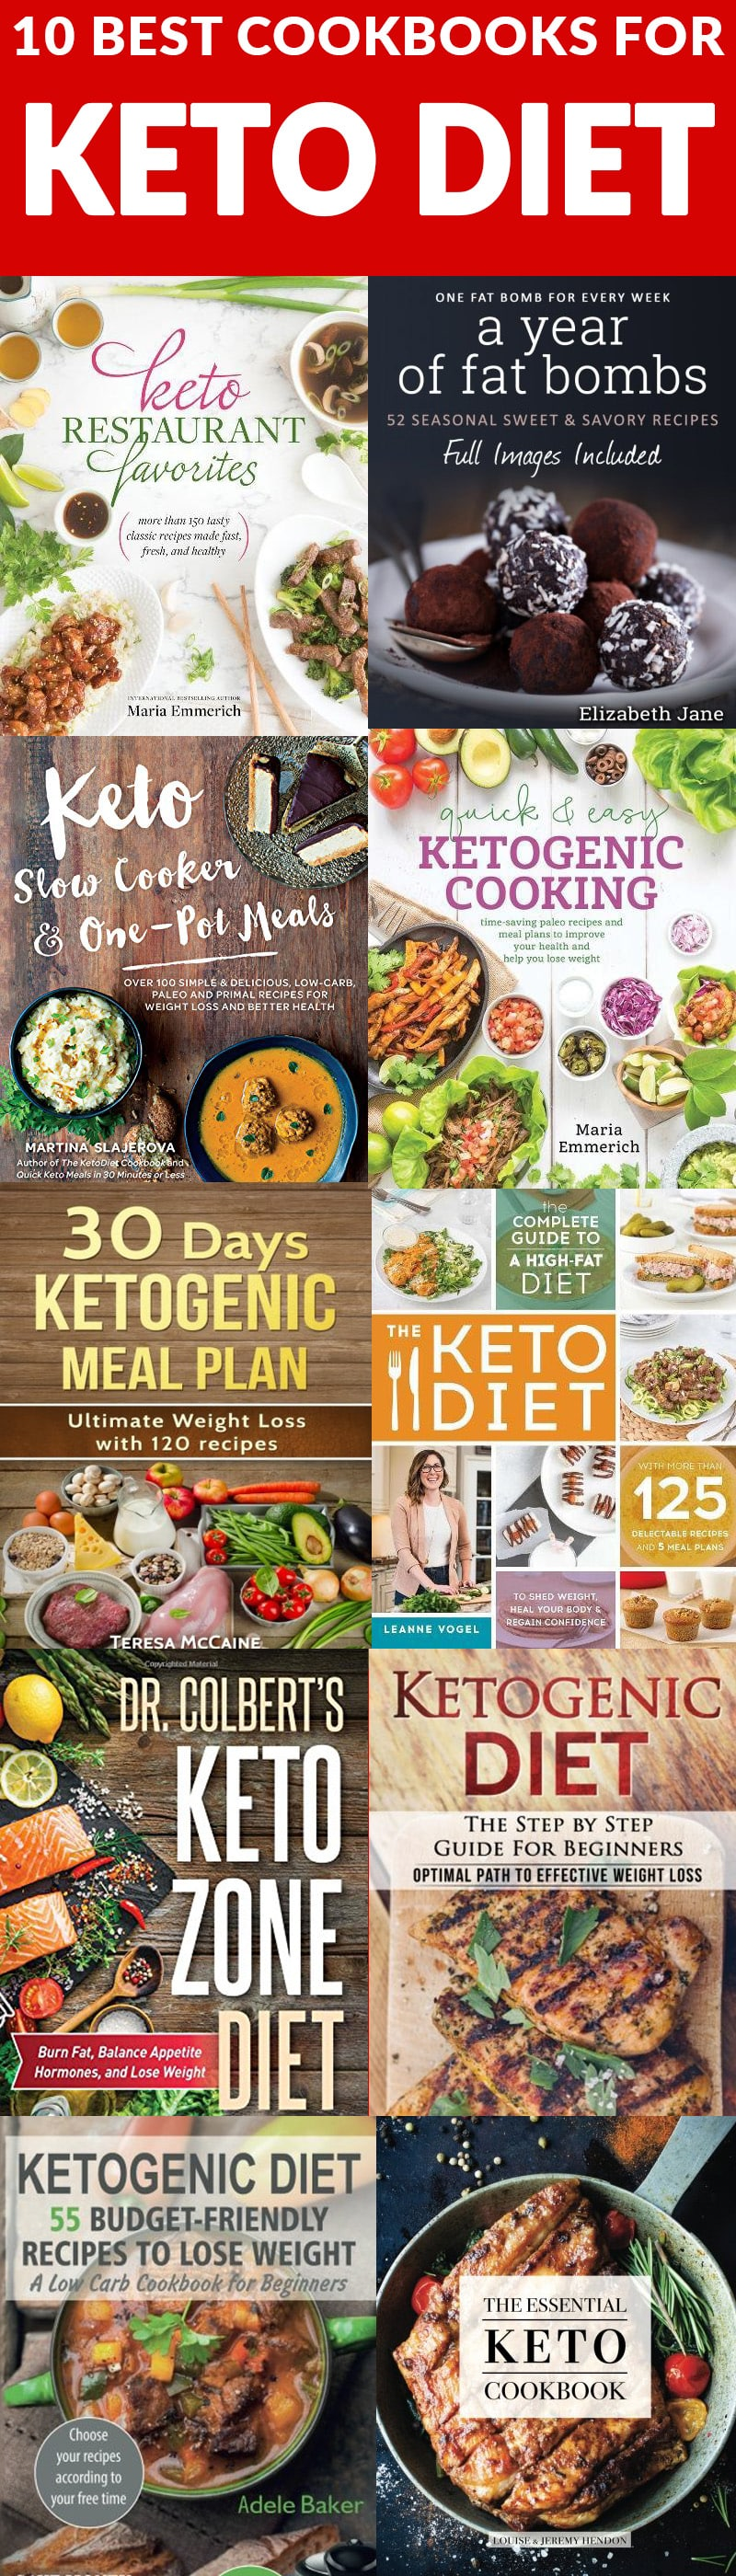 The 10 Best Cookbooks for the Keto Diet. If you're starting a Keto diet and are struggling to find the best recipes, these 10 Keto Diet Cookbooks will get you started with tried, tested and tasty recipes that actually work!